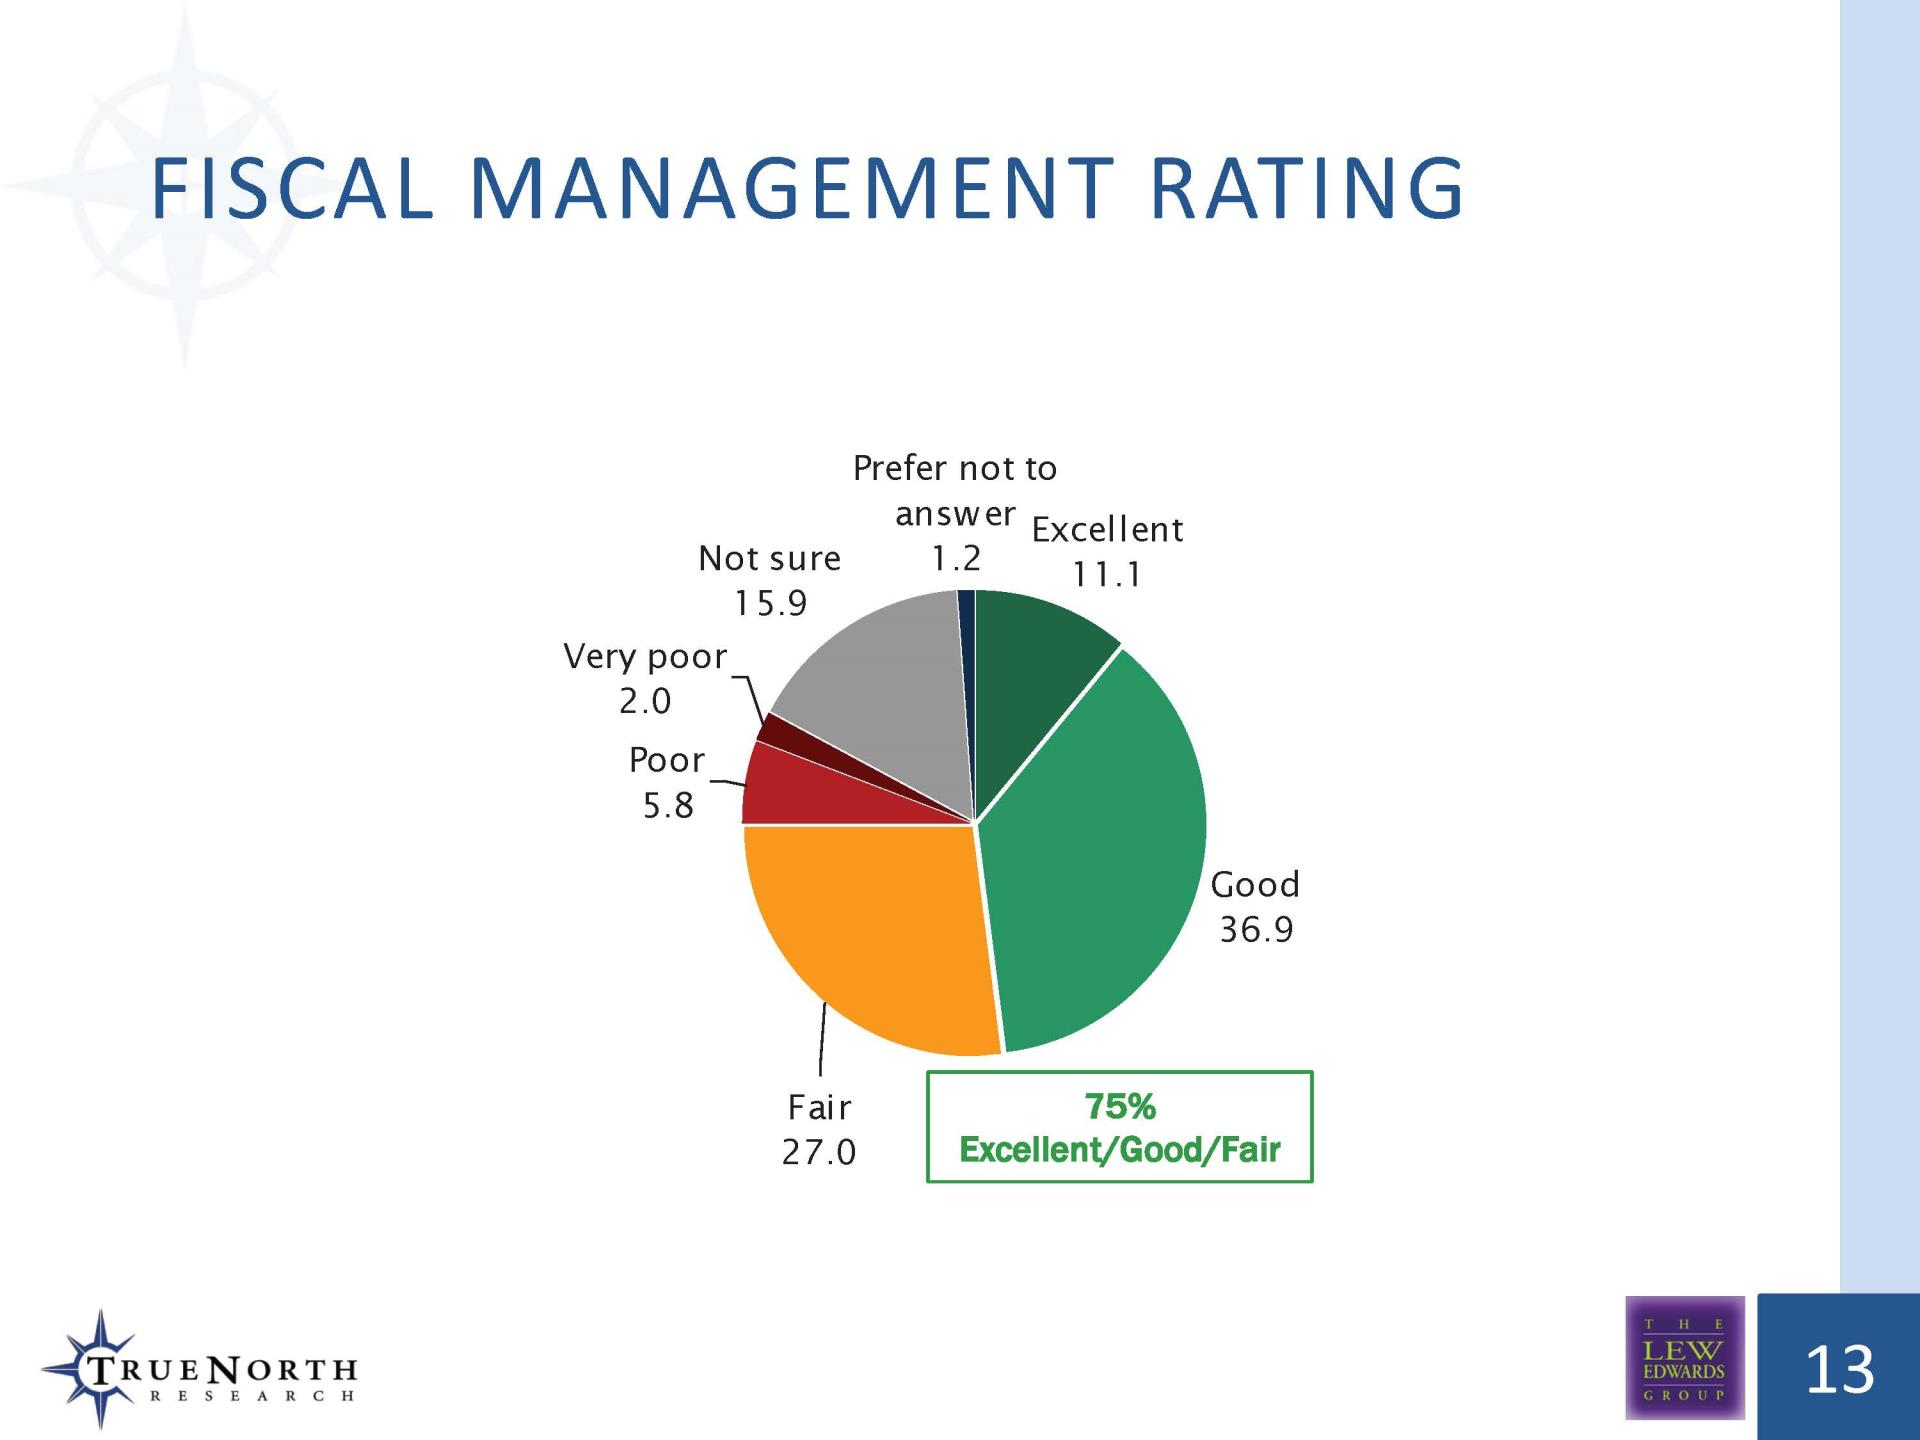 Fiscal Management TOT Measure Survey '18